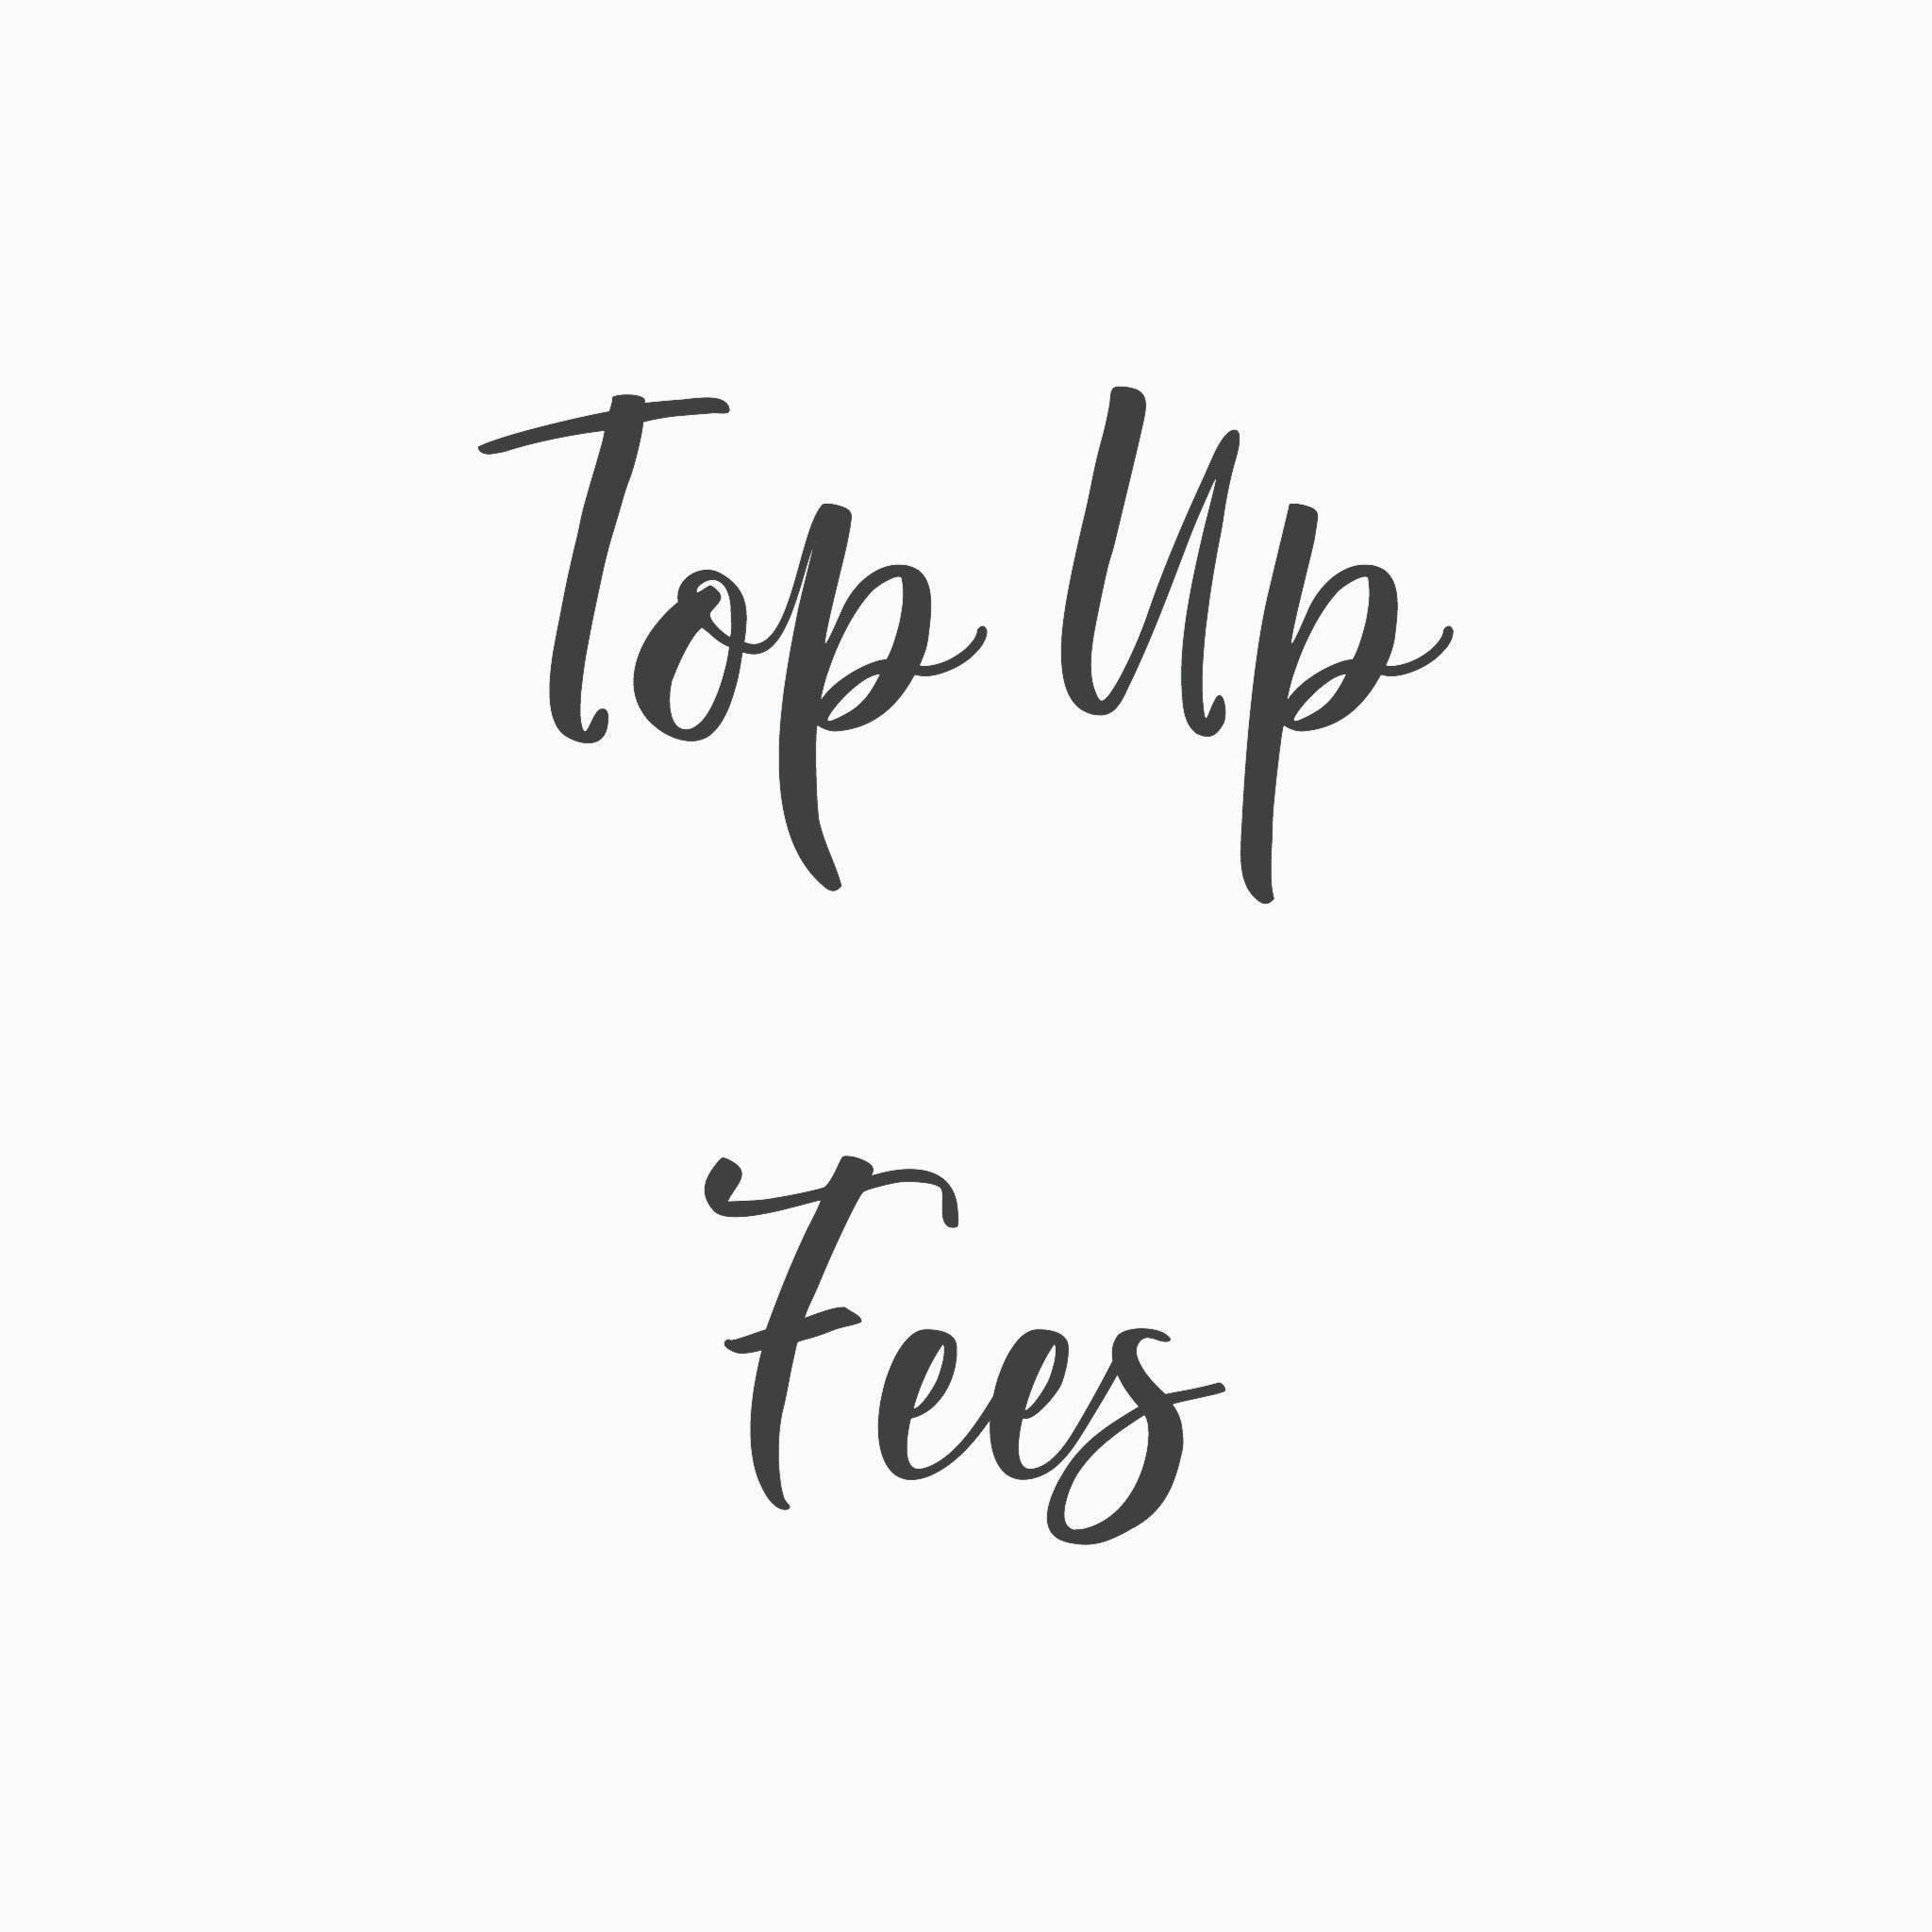 Top Up Fees